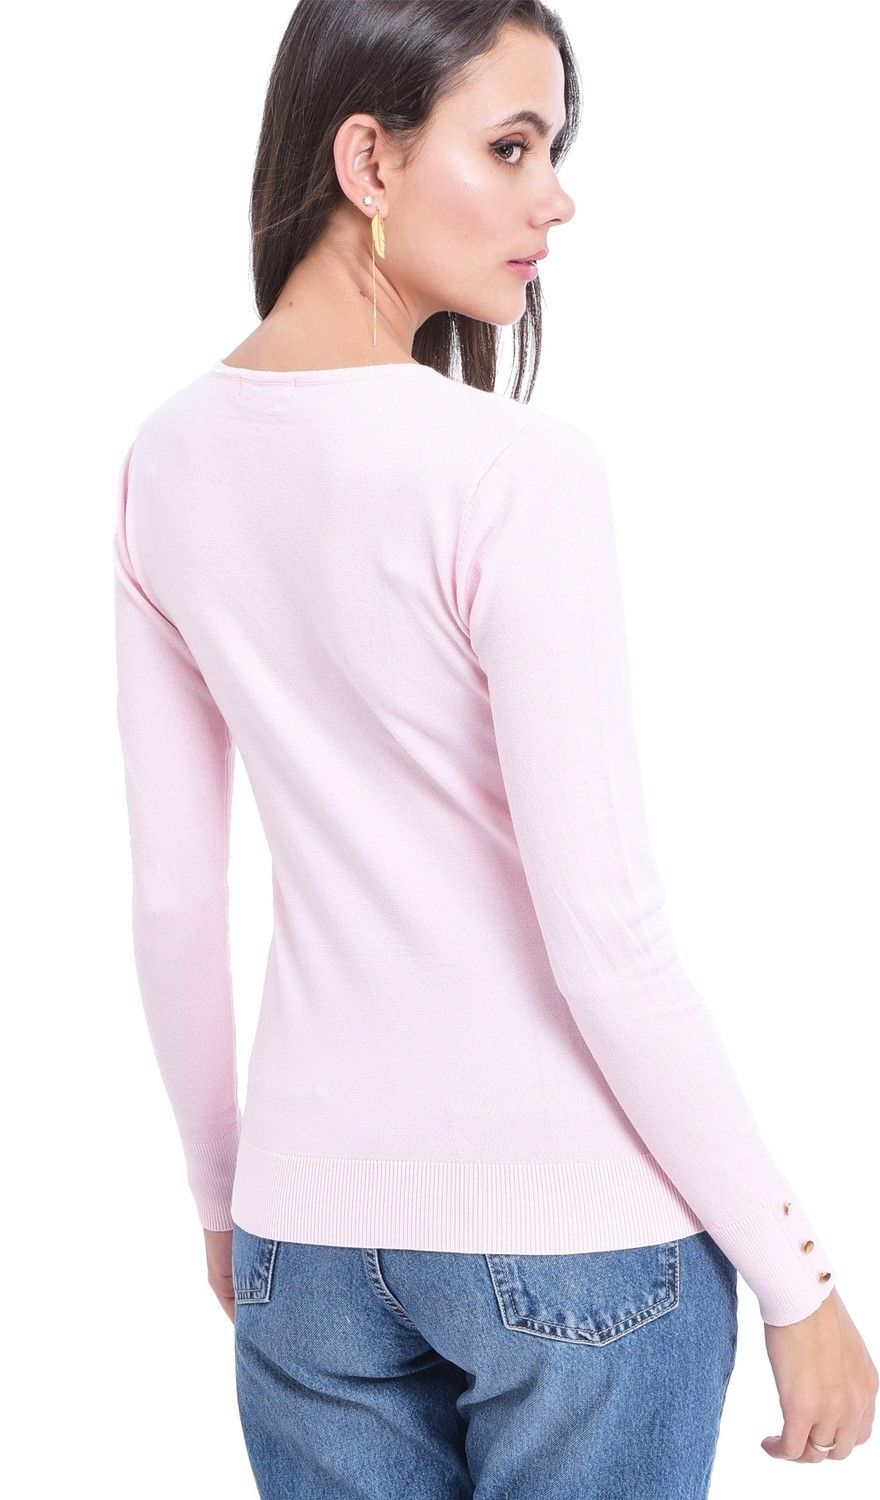 Assuili V-neck Sweater with Buttoned Sleeves in Pink